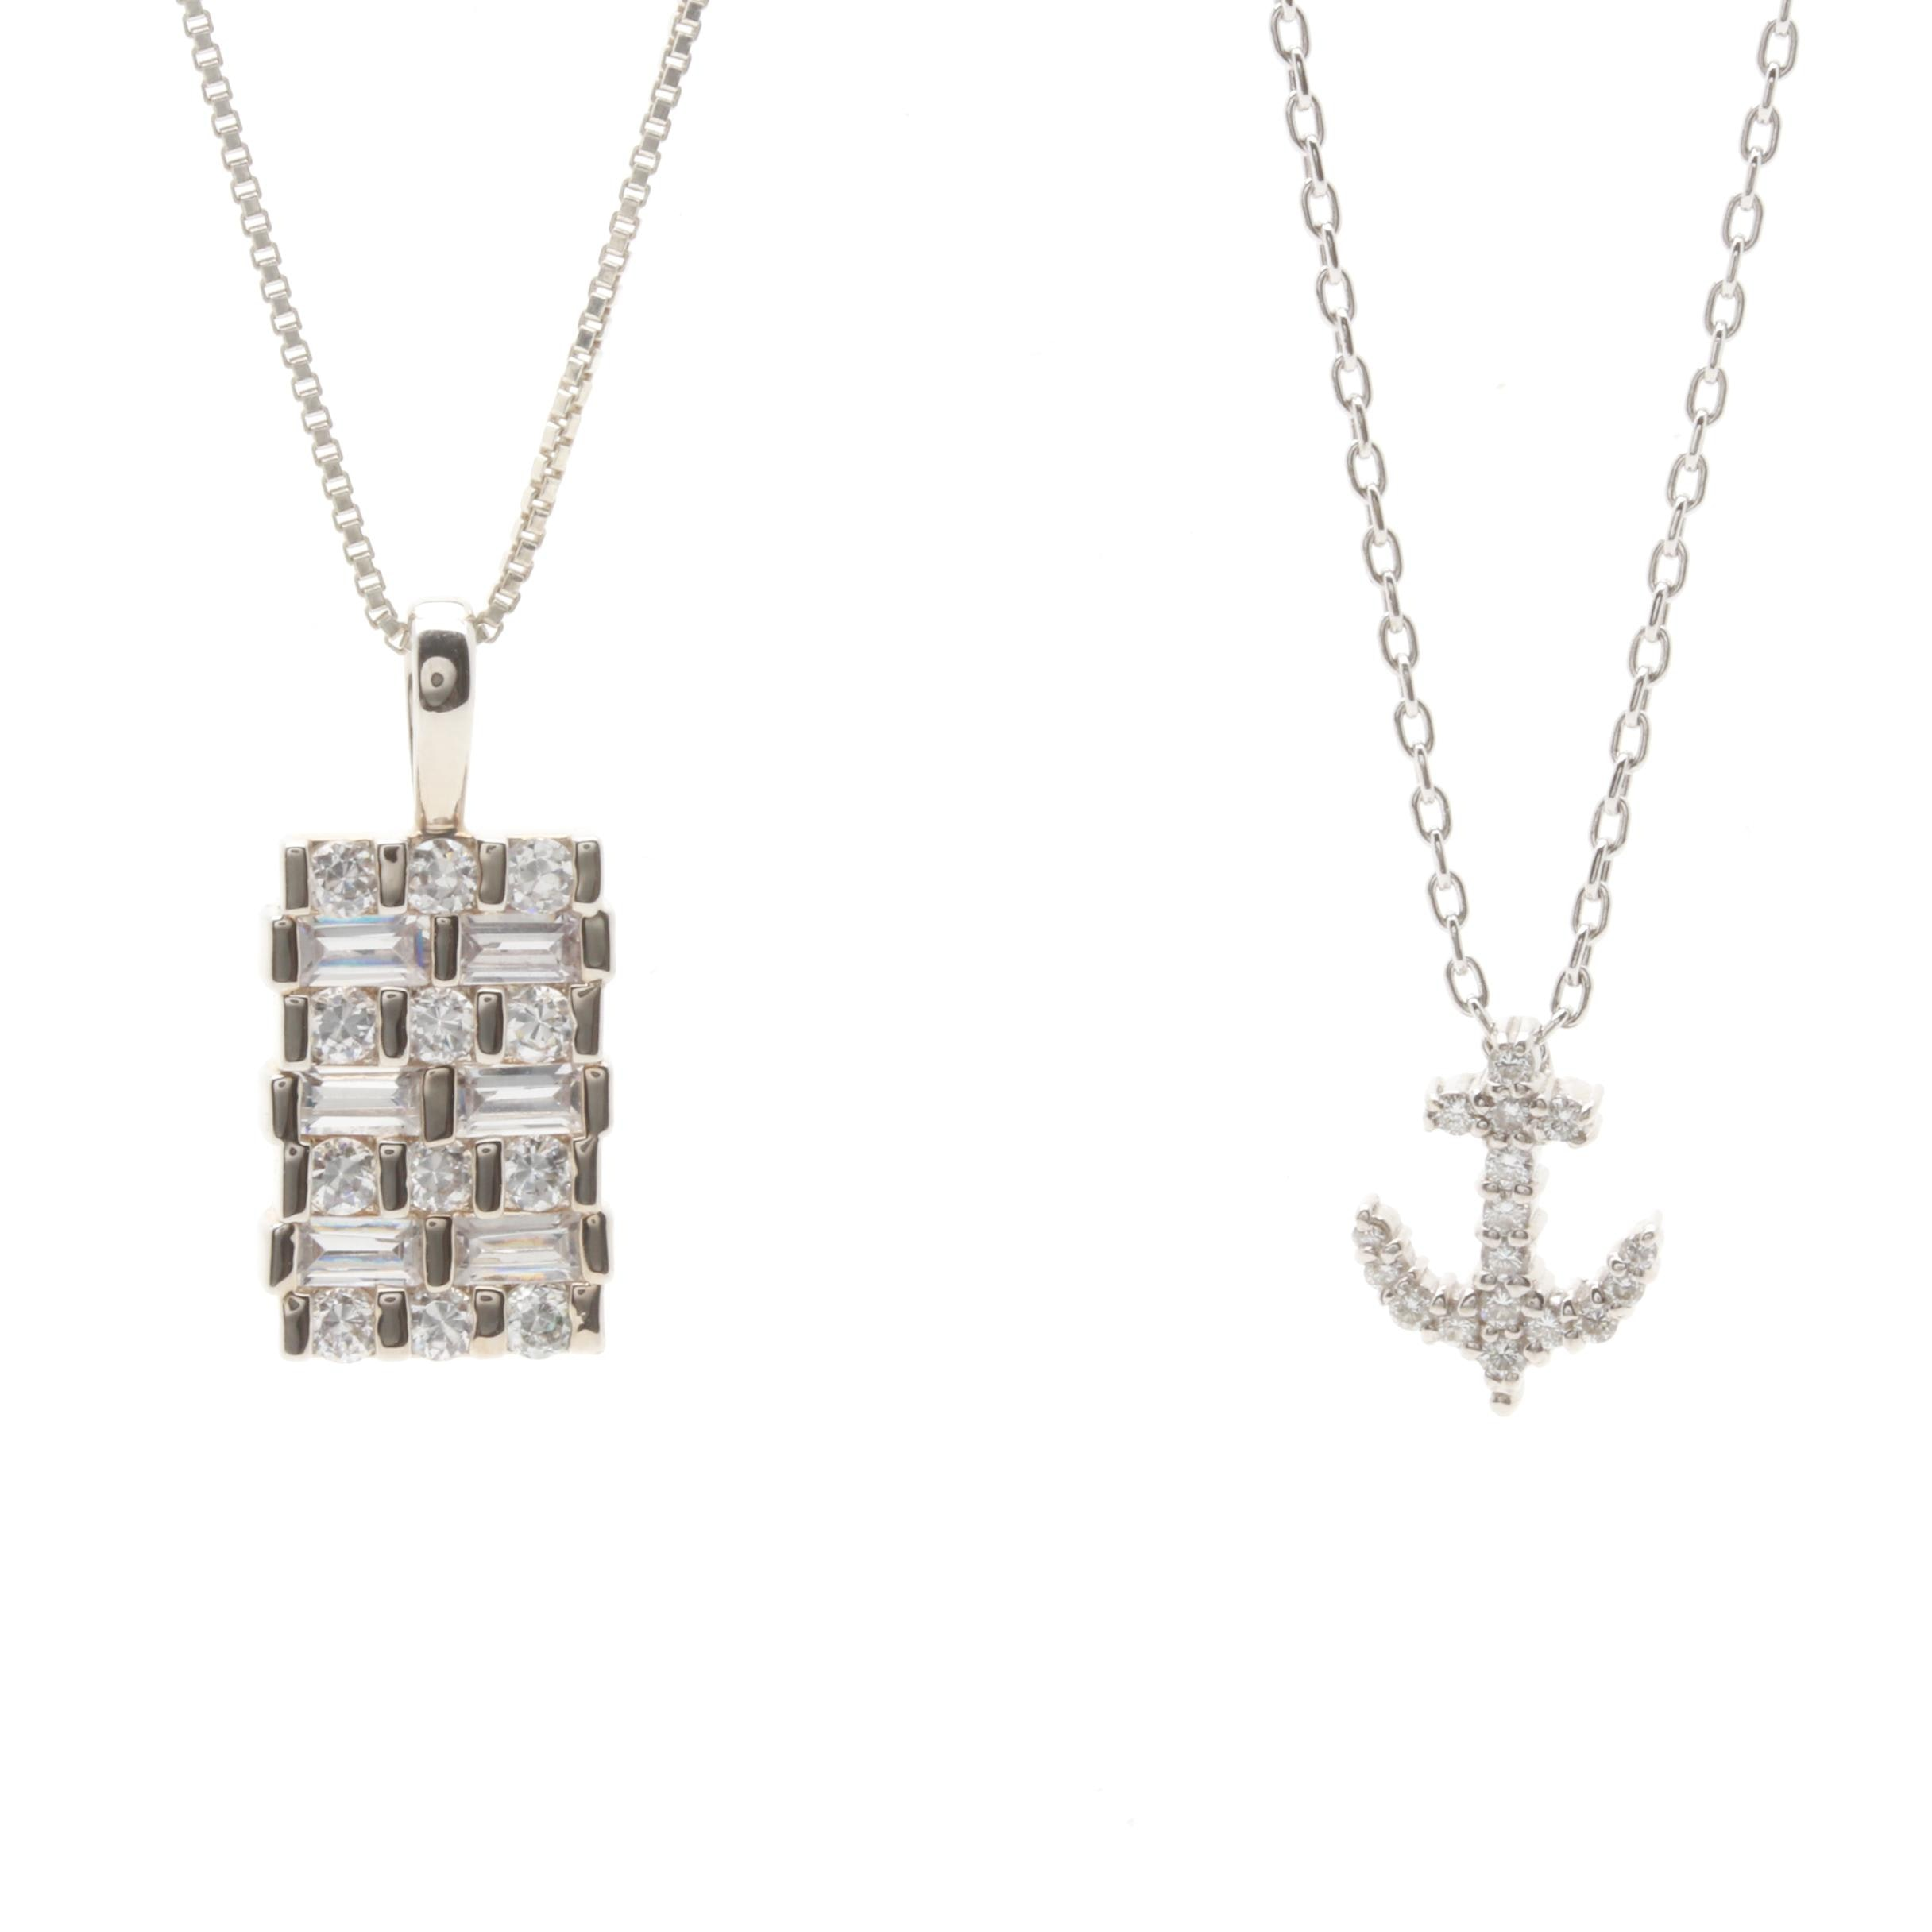 Sterling Silver Cubic Zirconia Necklace Selection Including an Anchor Pendant